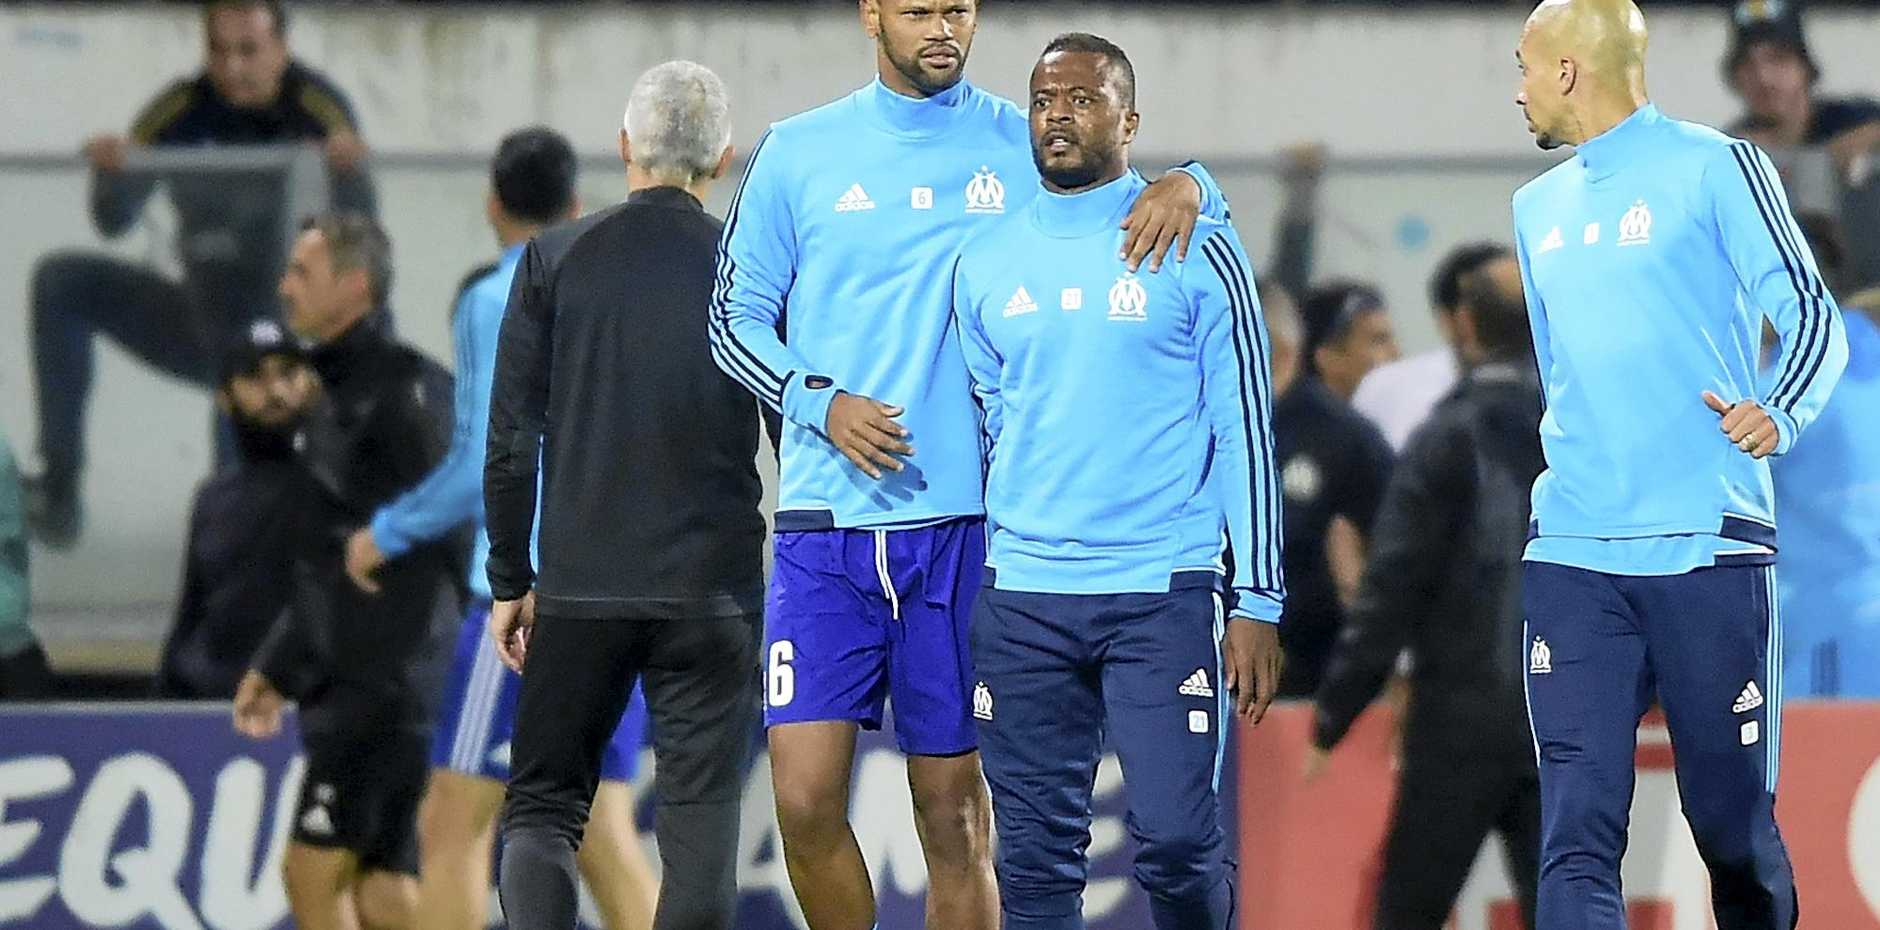 Marseille's Patrice Evra, second from right, is led away by his teammate Rolando after a scuffle with Marseille supporters.